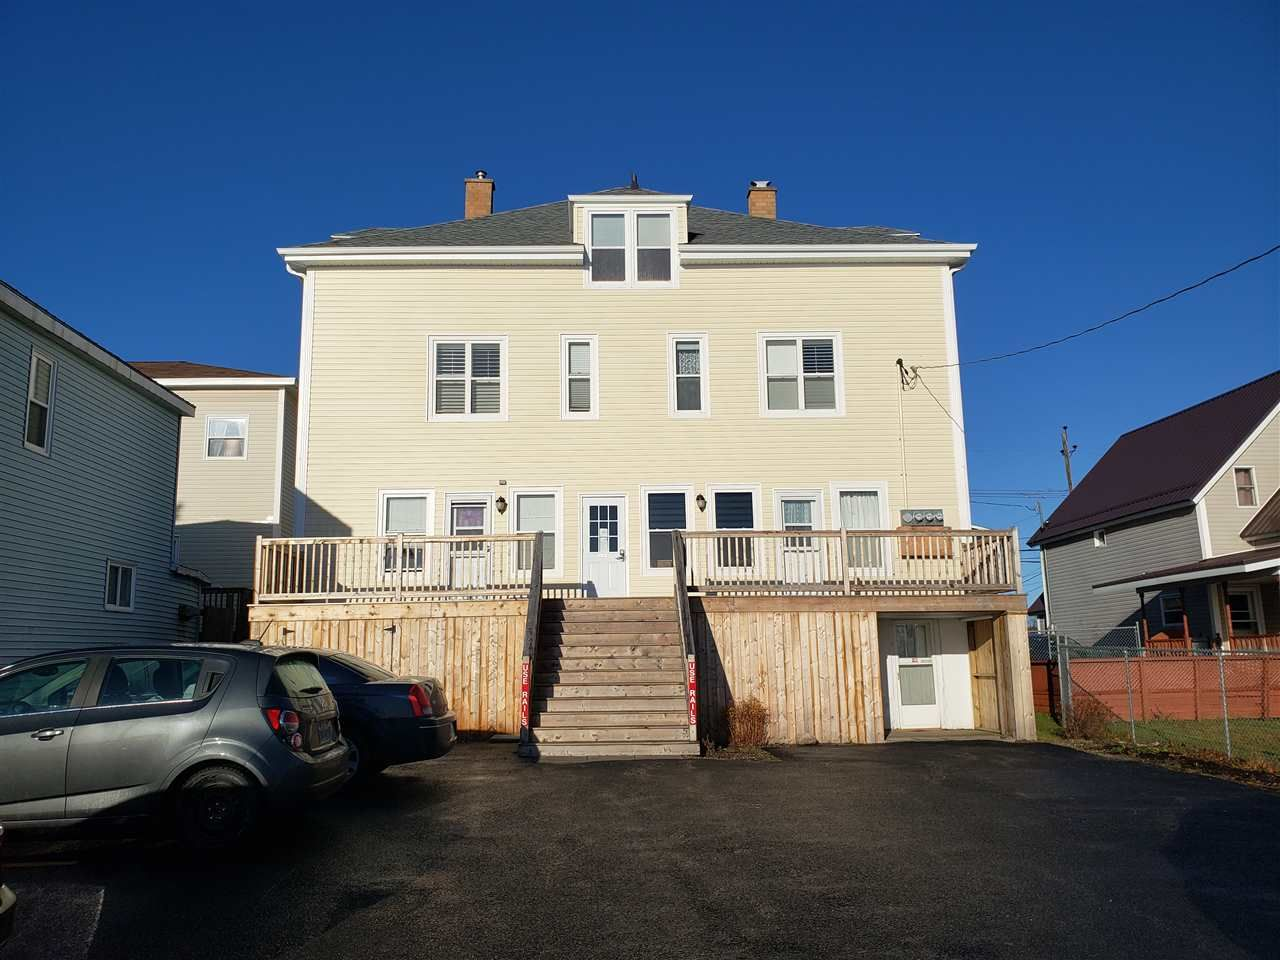 Main Photo: 121-123 Pierce Street in North Sydney: 205-North Sydney Multi-Family for sale (Cape Breton)  : MLS®# 202024949